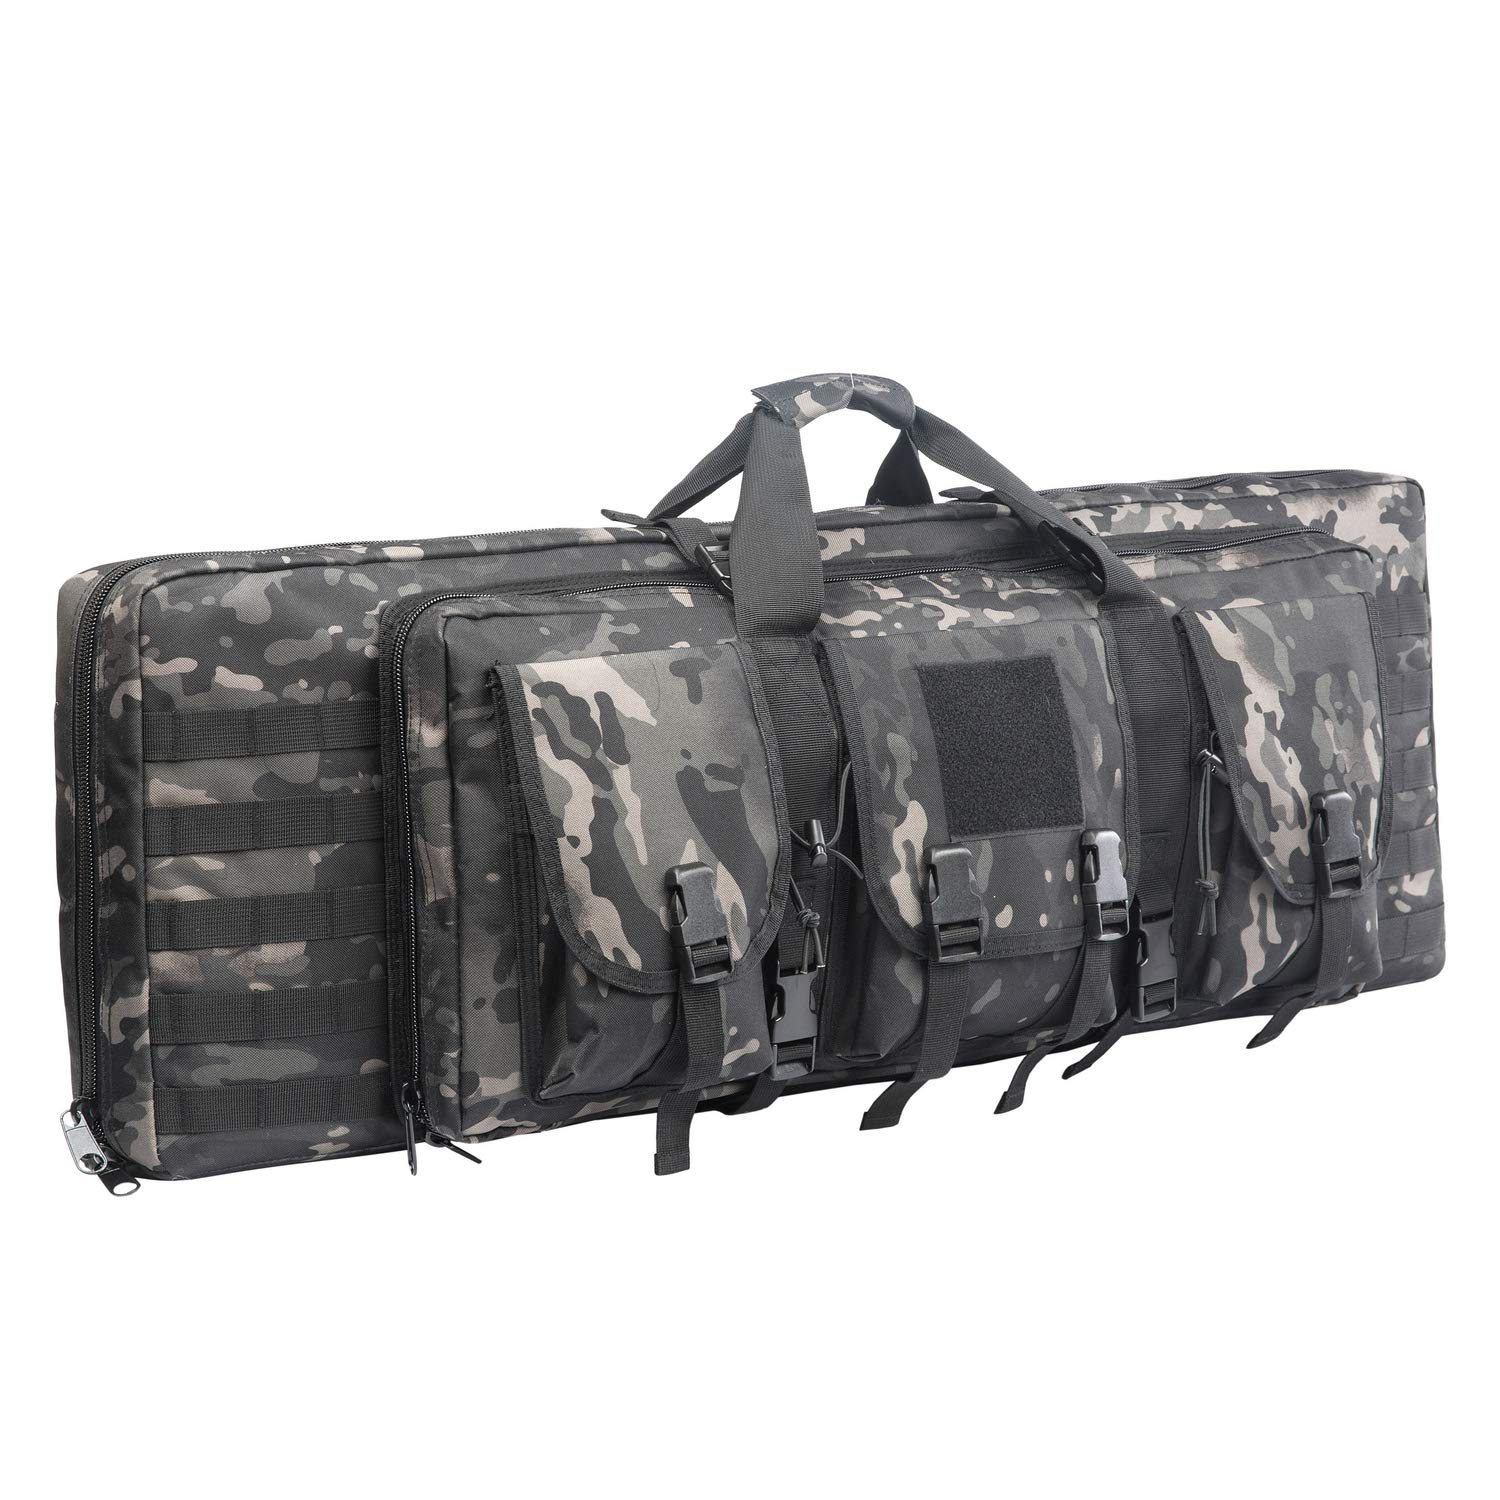 WolfWarriorX Double Long Rifle Gun Case Bag Tactical Carbine Cases Water Dust Resistant Firearm Shotgun Bag Outdoor MOLLE Hunting Shooting Storage Transport, Available in 38'' 42''  (BM, 38inch) by WolfWarriorX